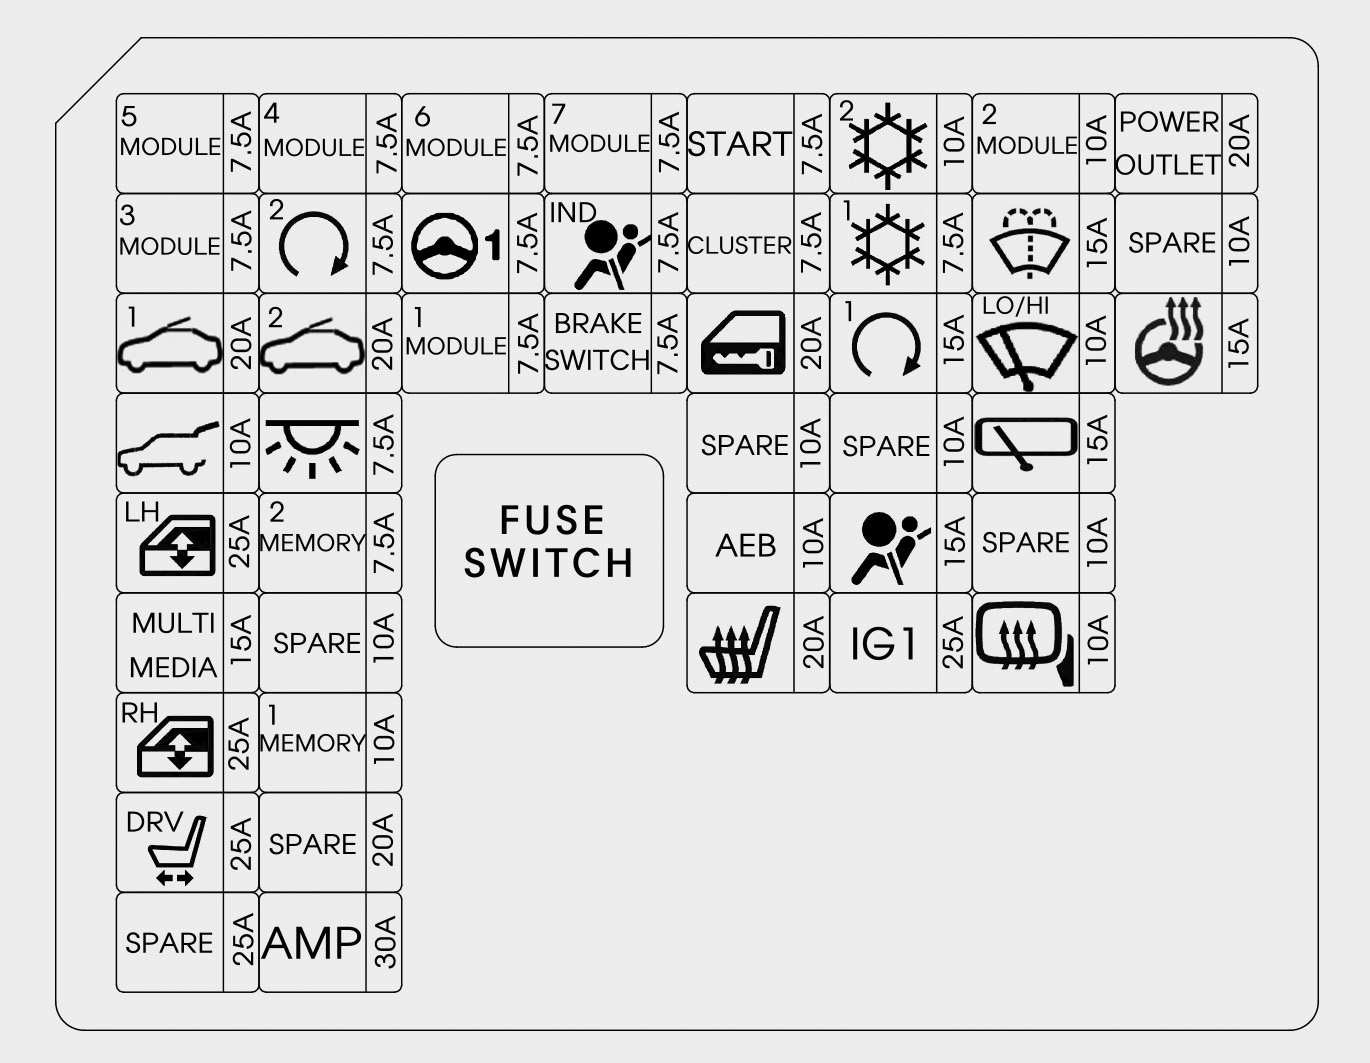 hight resolution of hyundai i30 2018 fuse box diagram auto genius 1996 infiniti i30 fuse box diagram